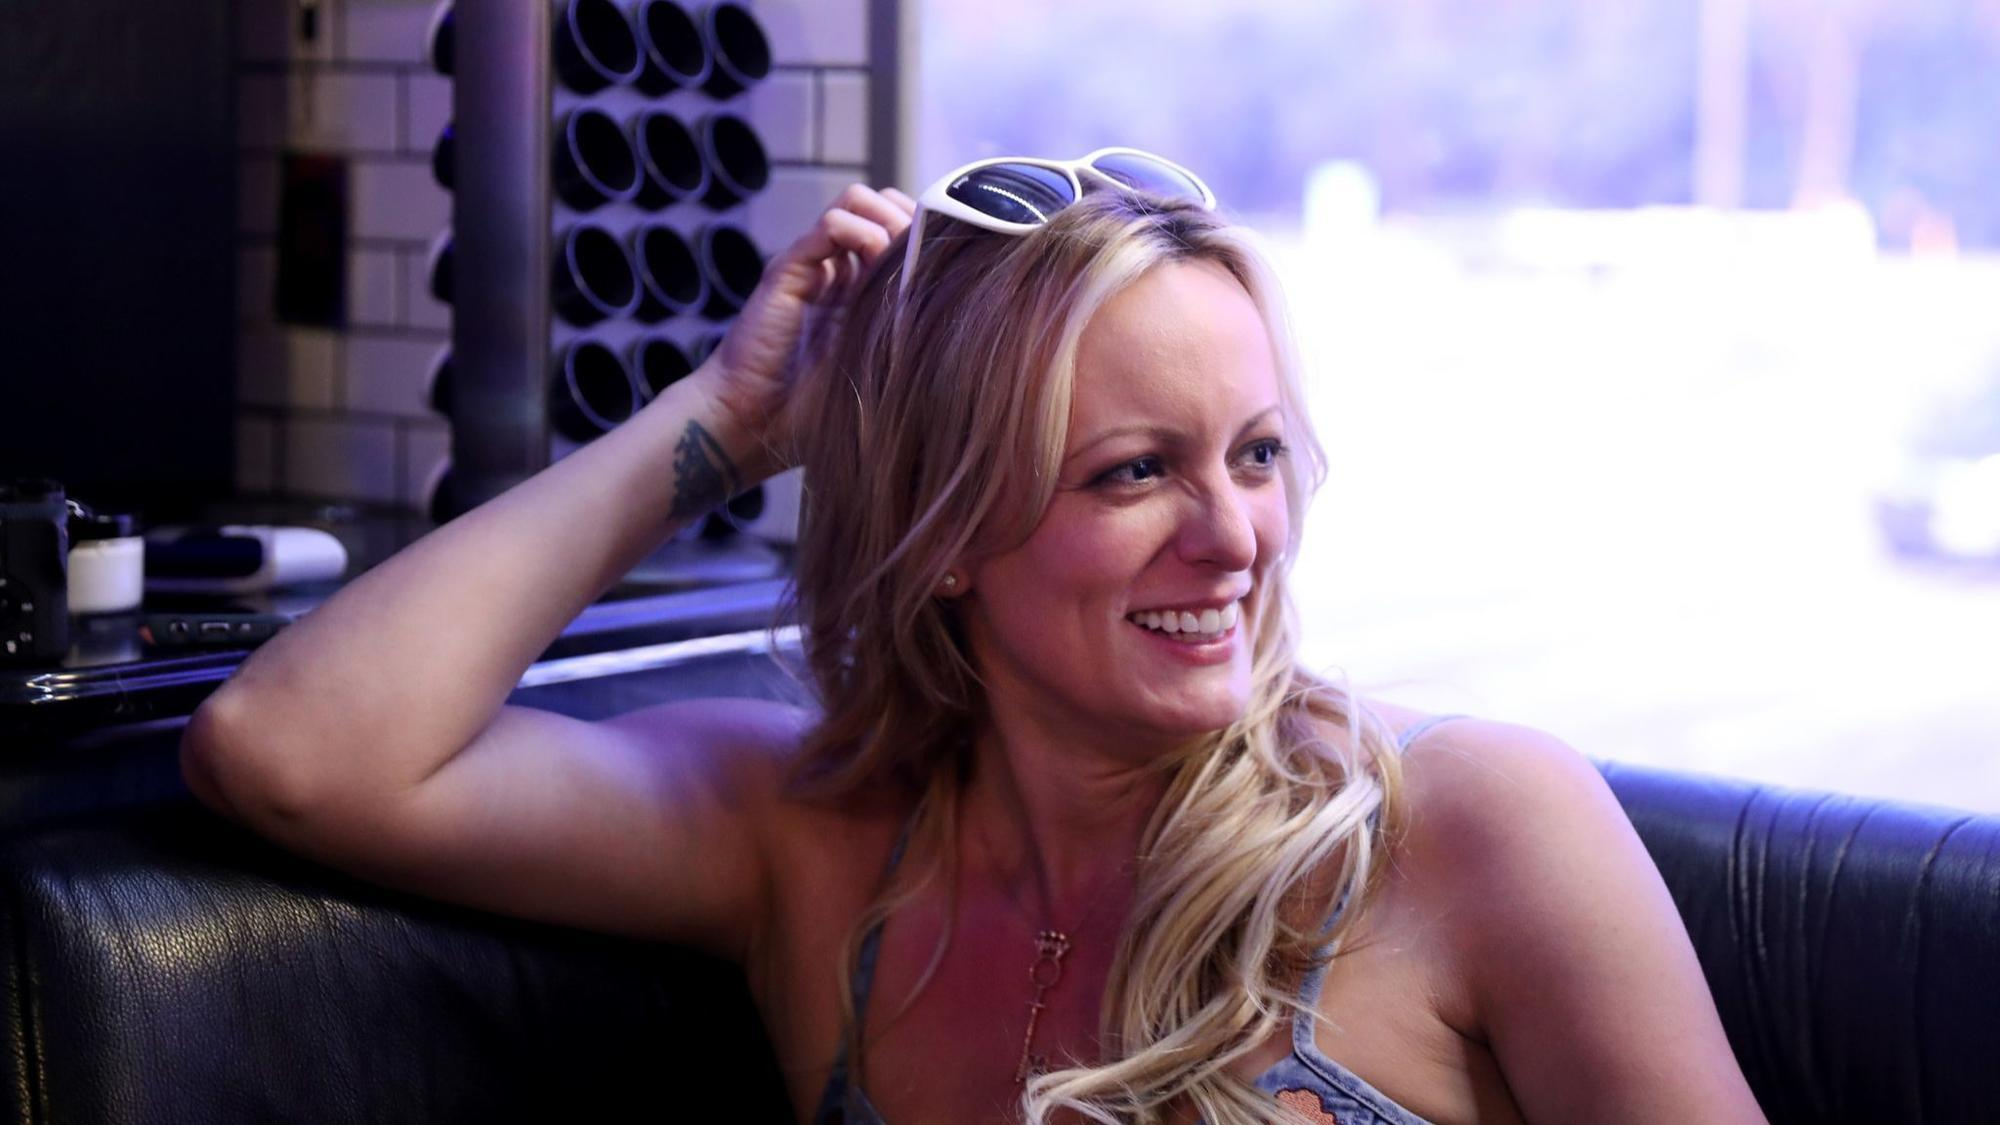 5 Things You Might Not Know About Stormy Daniels Chicago